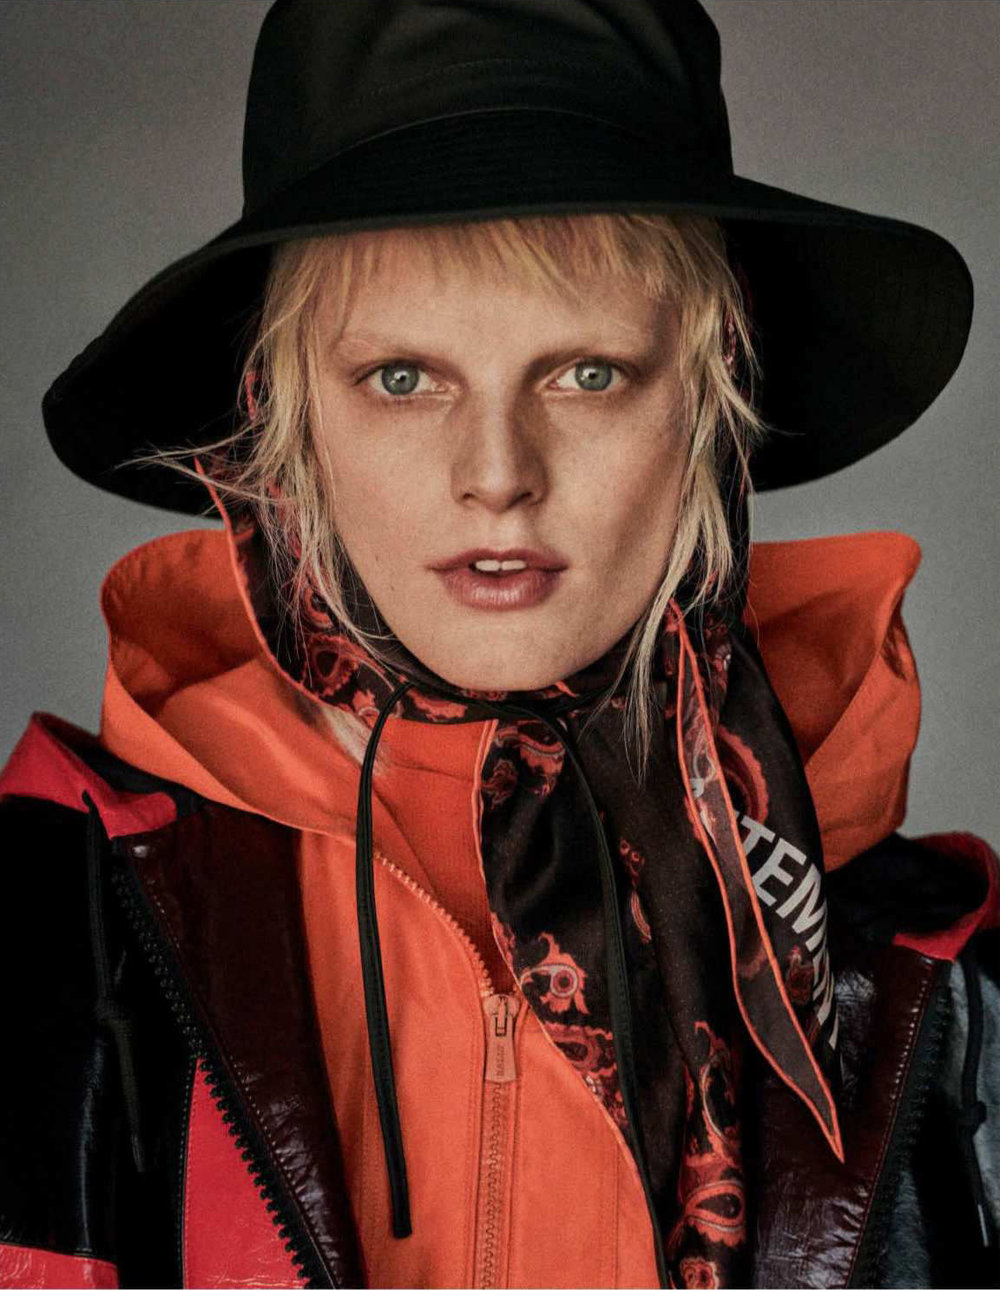 Hanne Gaby Odiele by Giampaolo Sgura for Vogue Germany Sept 2018 (2).jpg